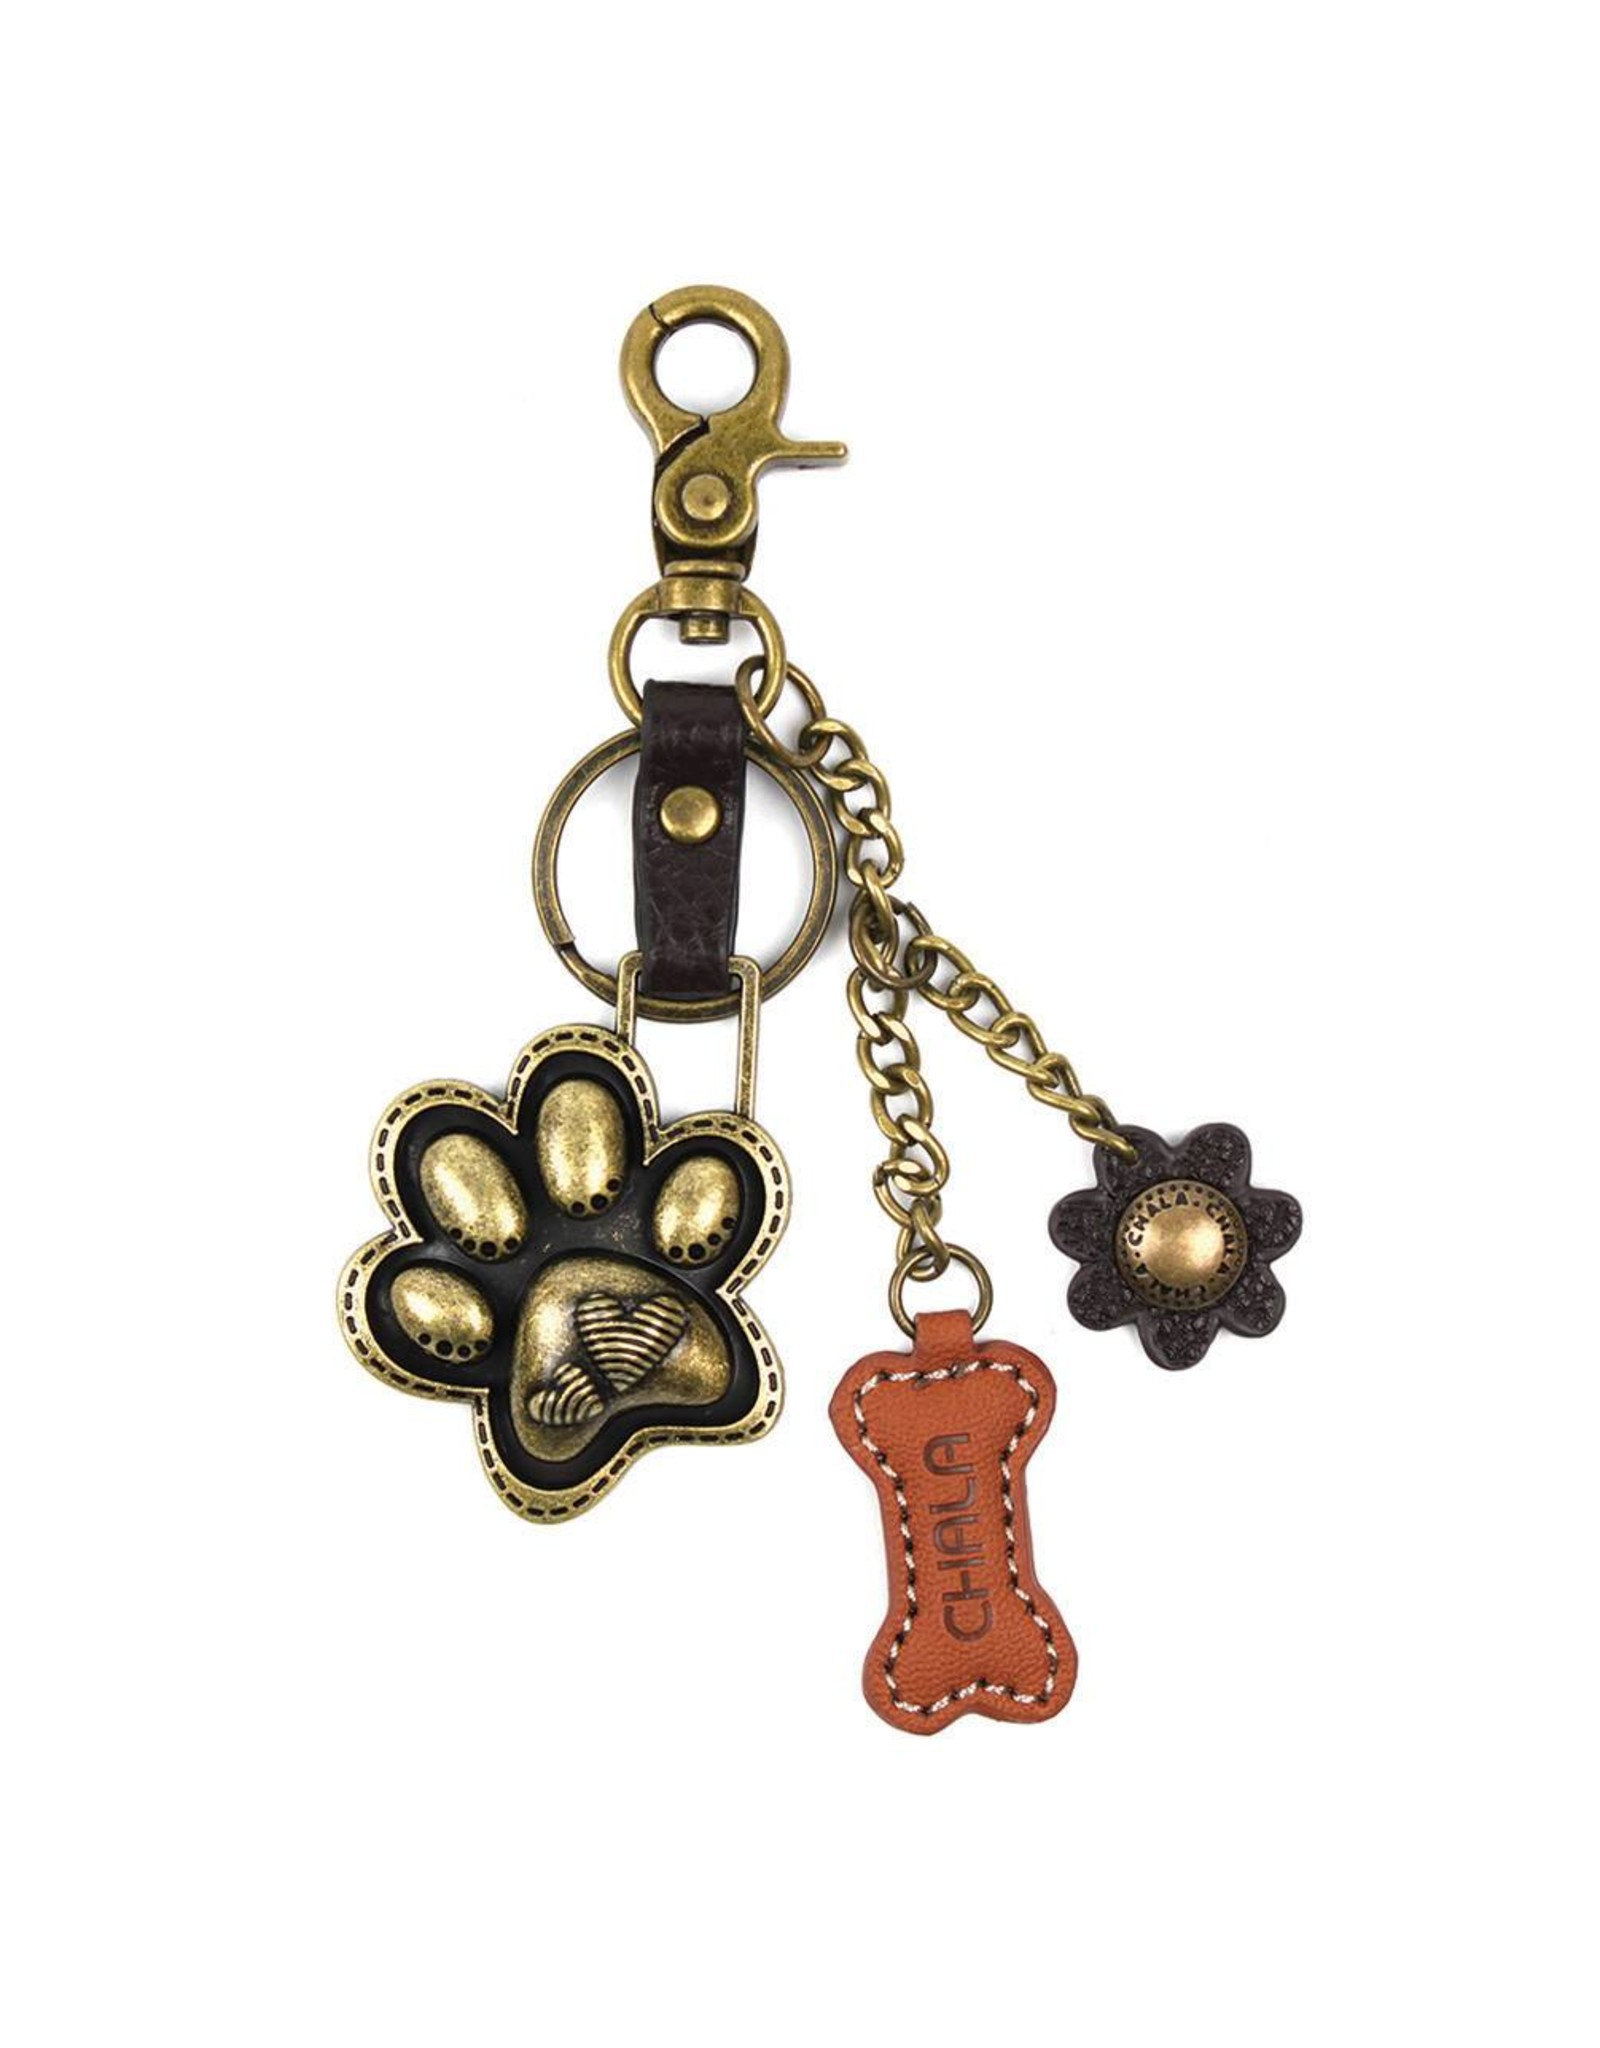 Chala Charming Key Chain Paw Print